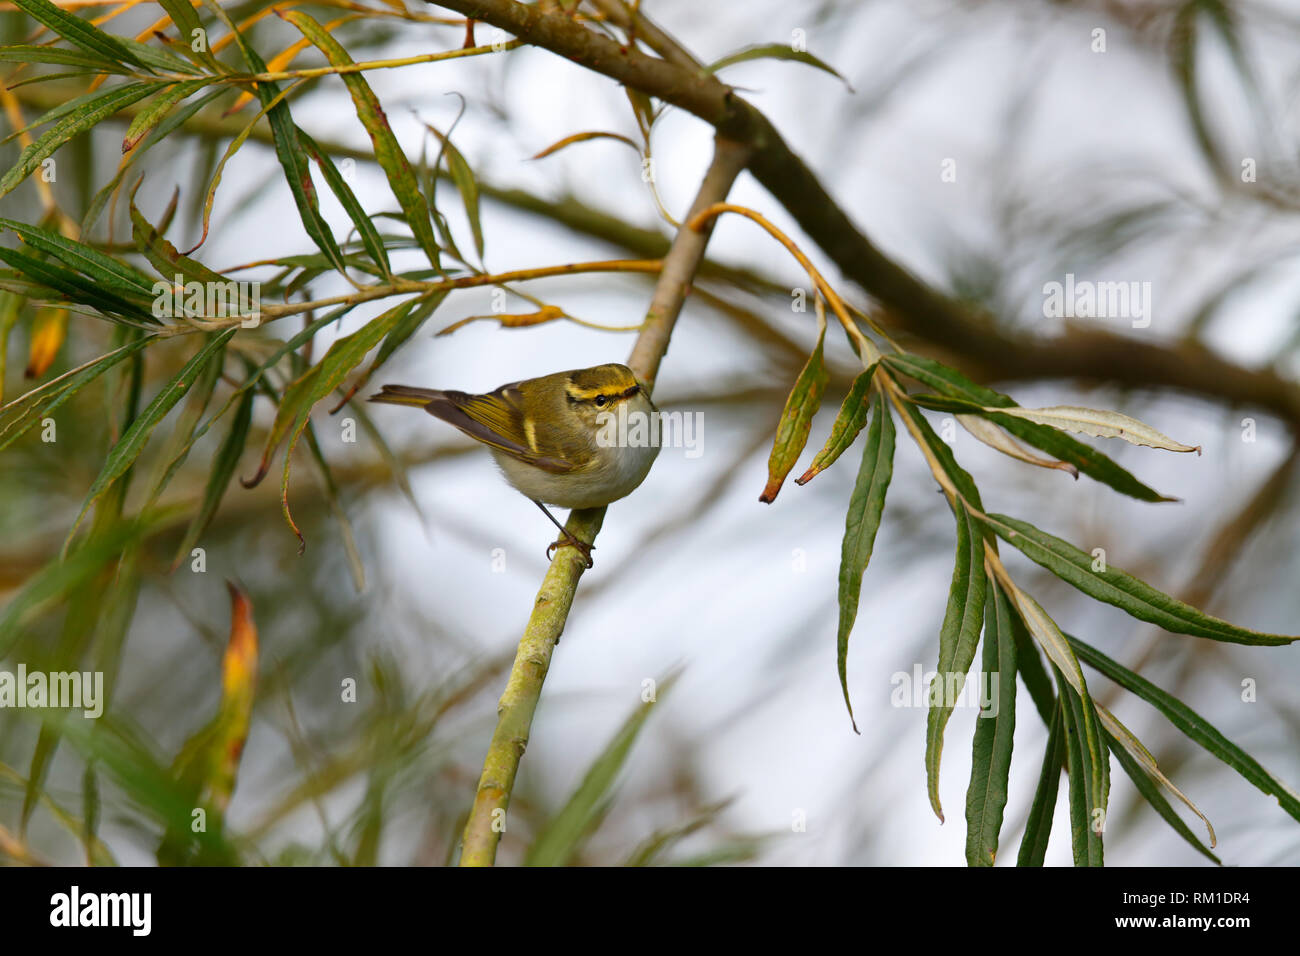 Pallas's Leaf Warbler [Phylloscopus proregulus] - Donna Nook, Lincolnshire Stock Photo